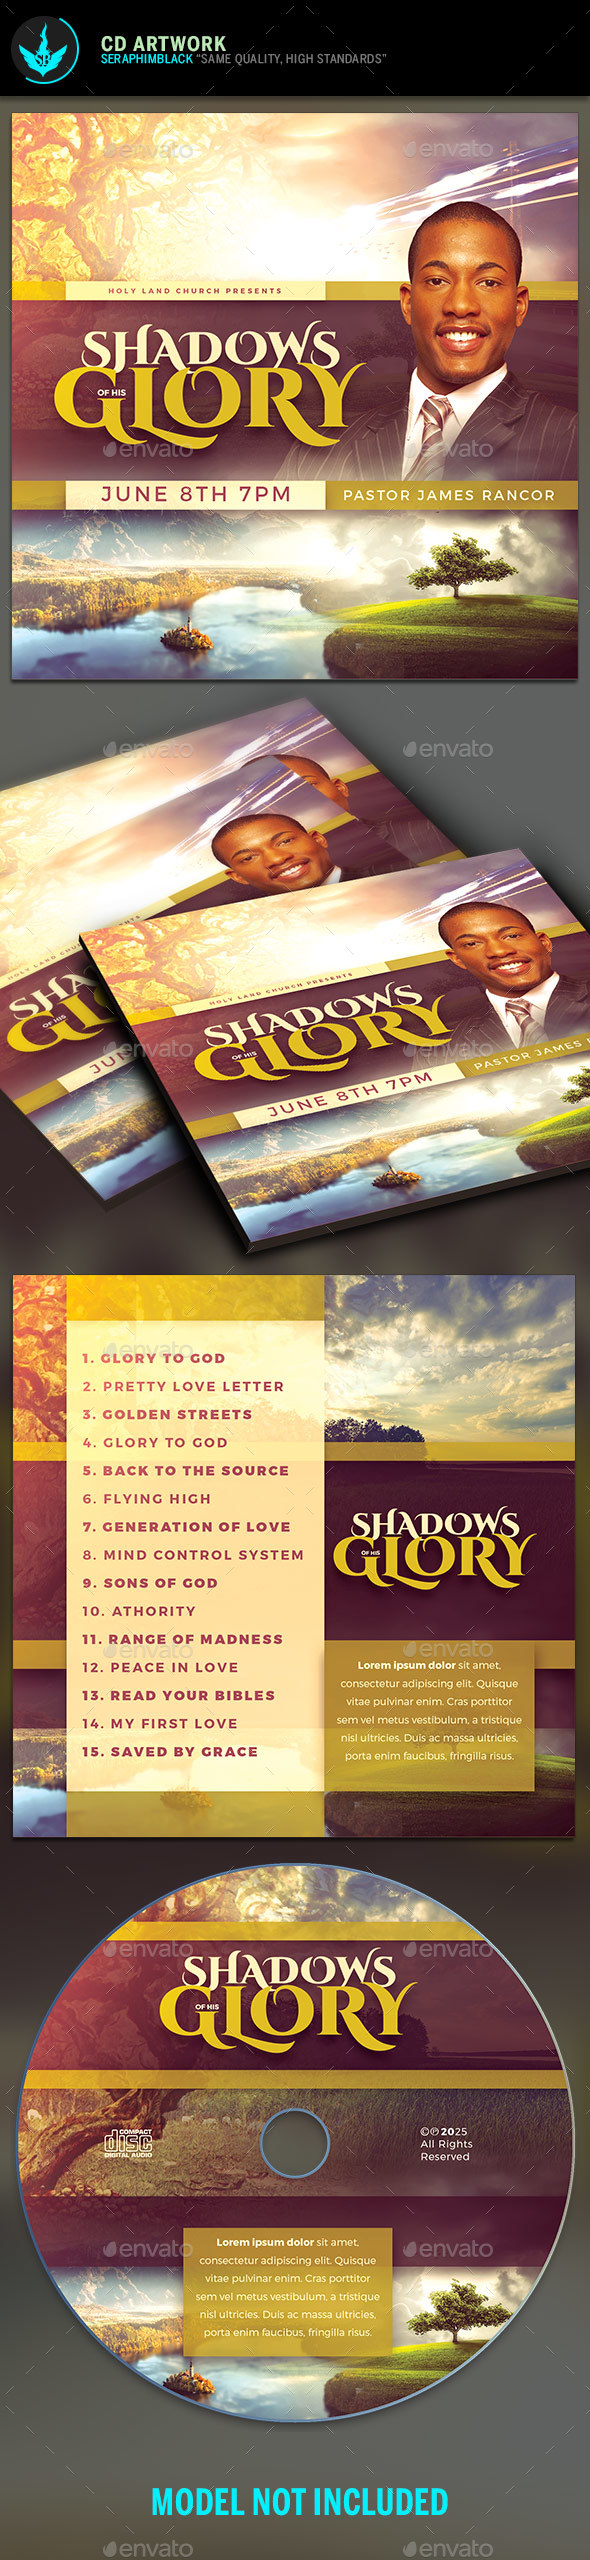 Shadows of His Glory CD Artwork Template - CD & DVD Artwork Print Templates